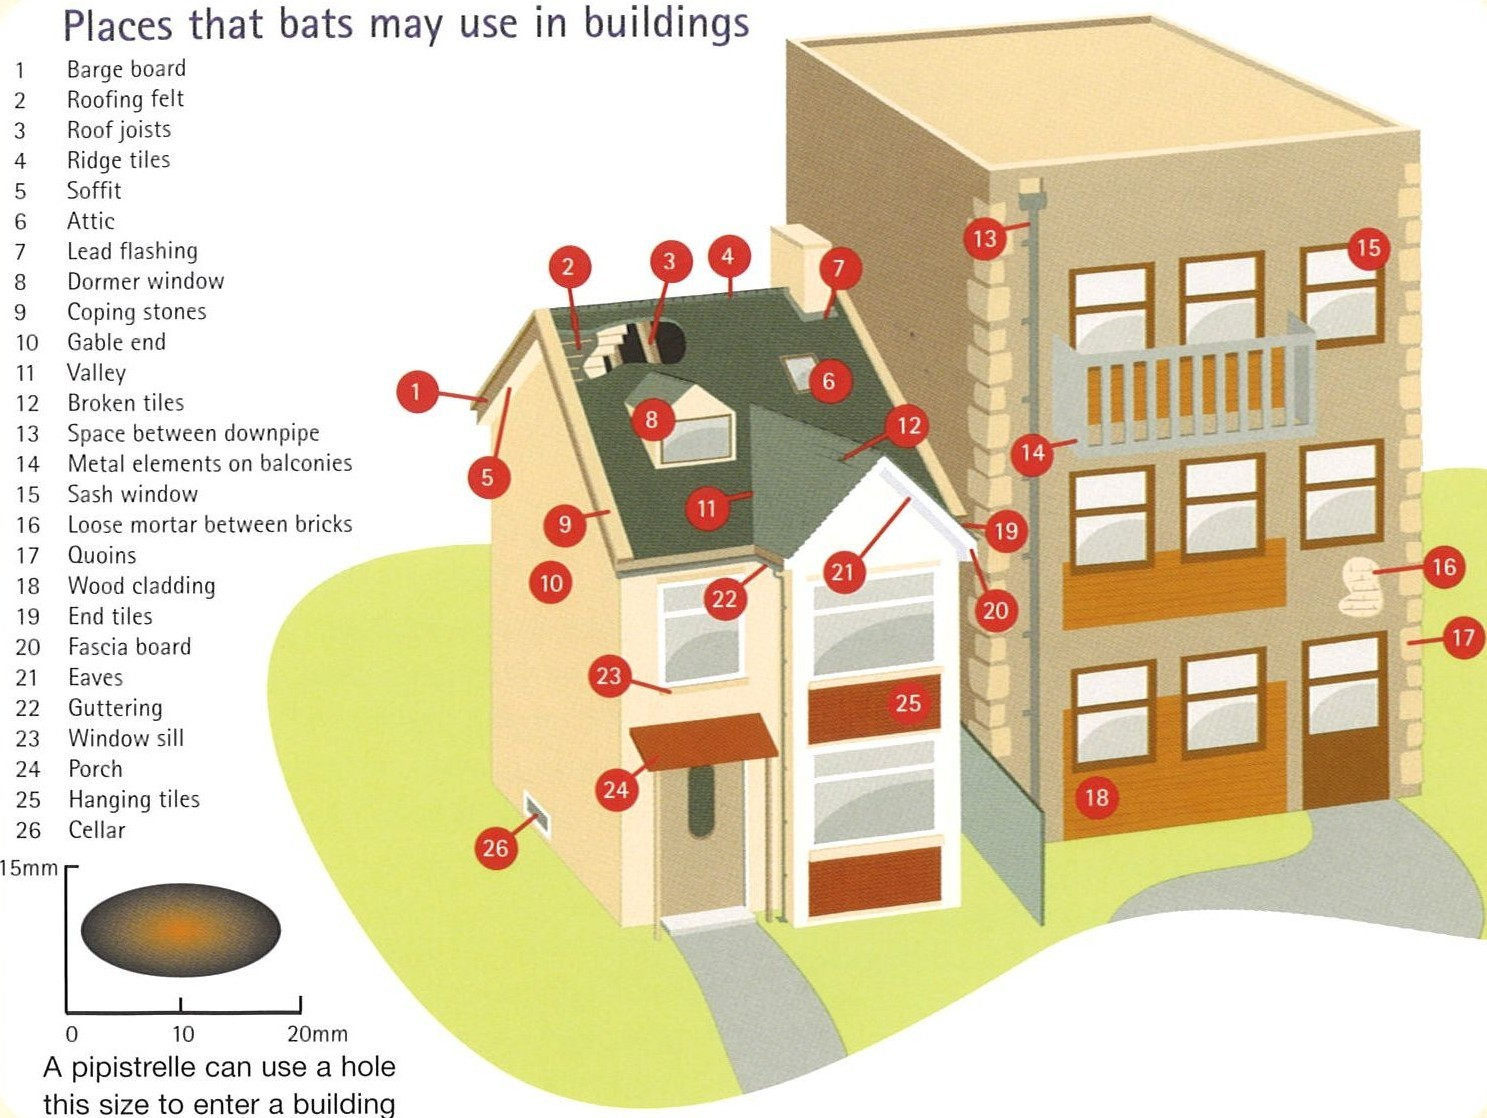 Where might bats be roosting in my property?